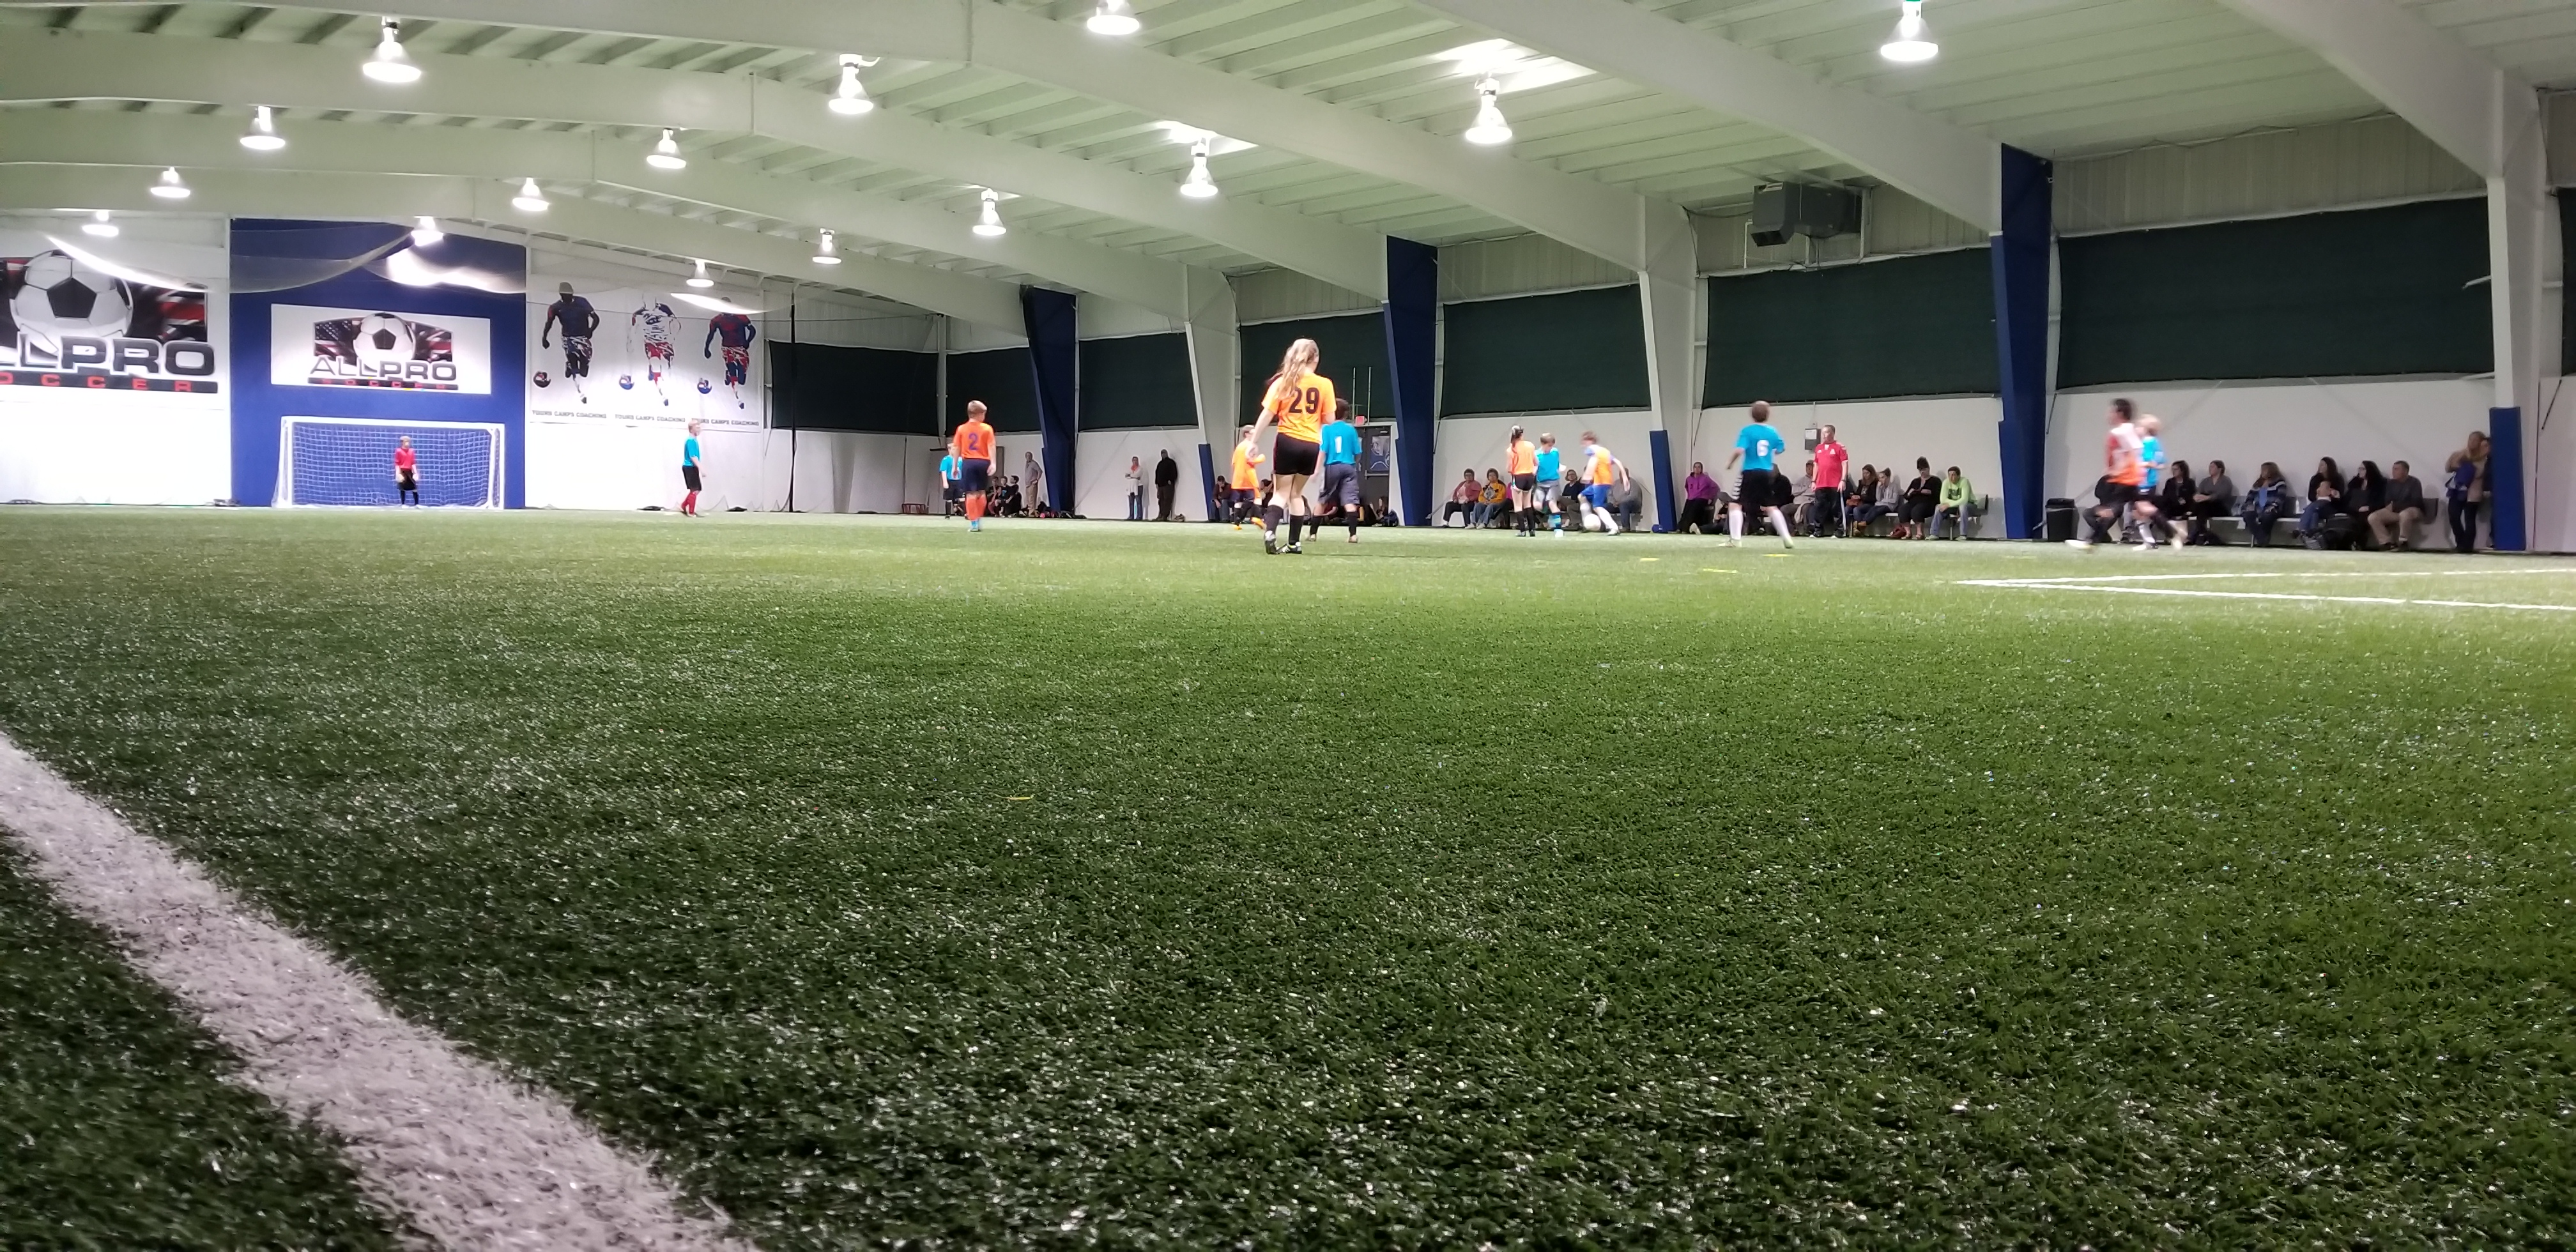 All Pro indoor league